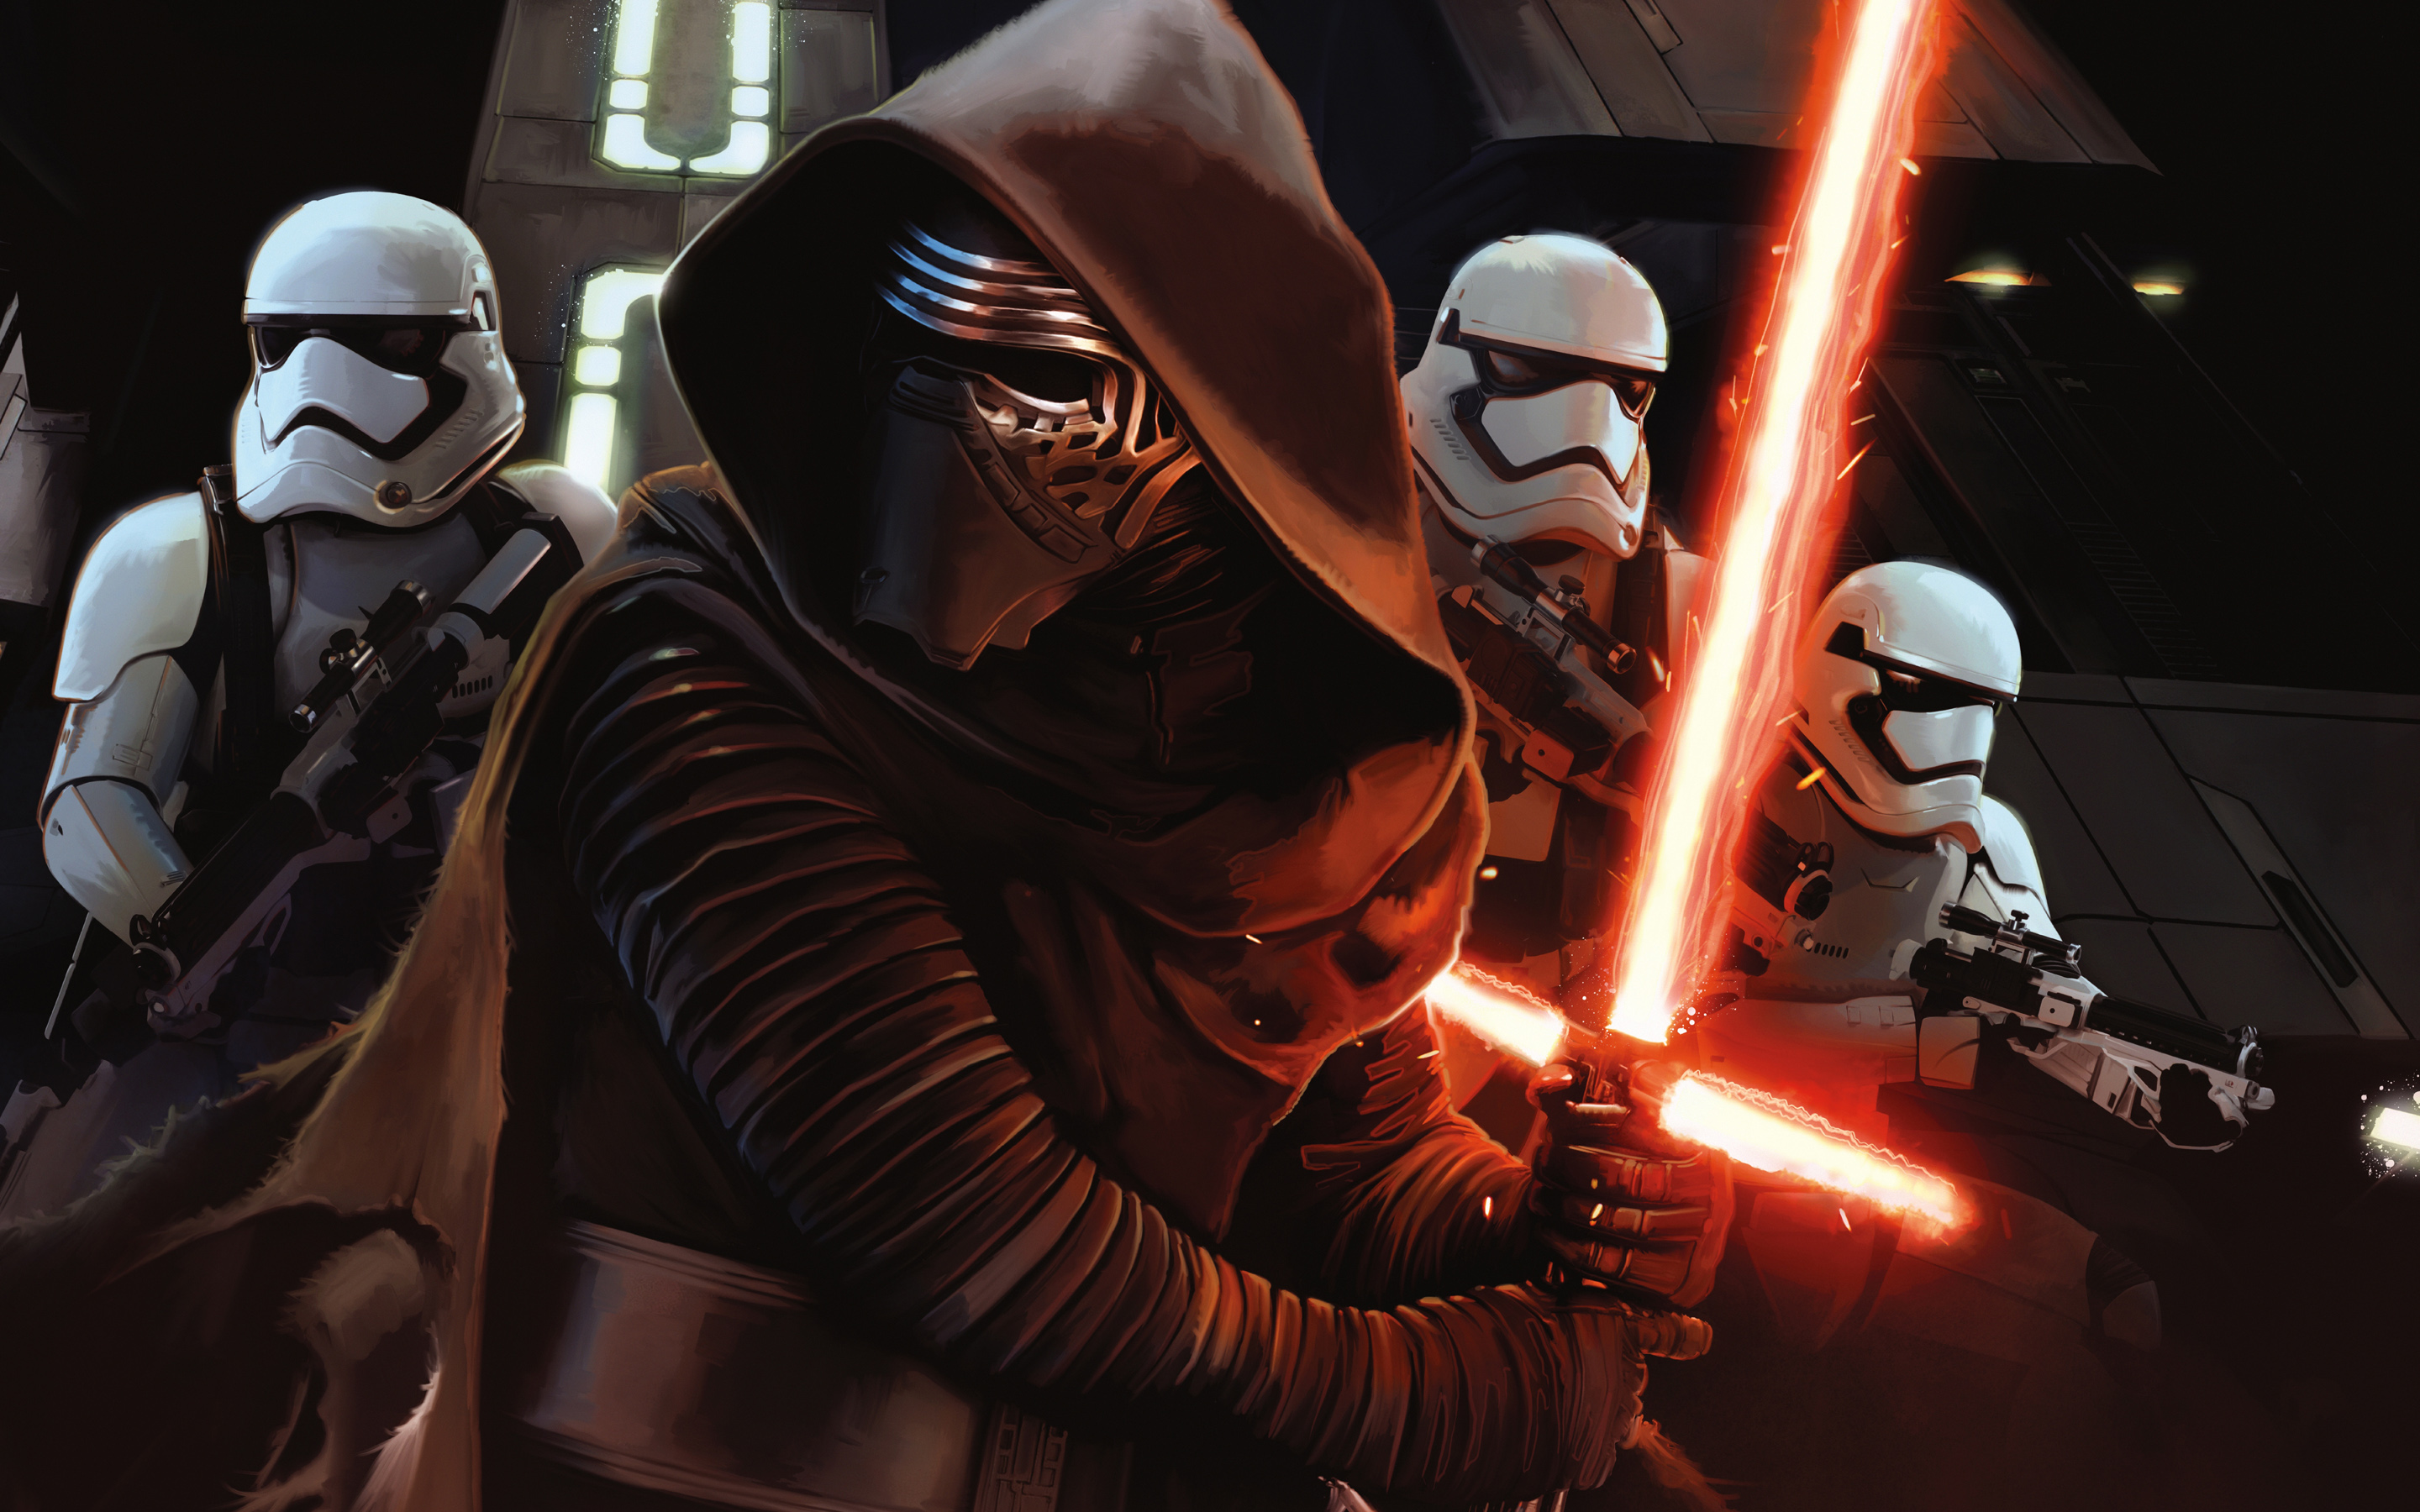 Star Wars Episode Vii The Force Awakens Hd Wallpaper